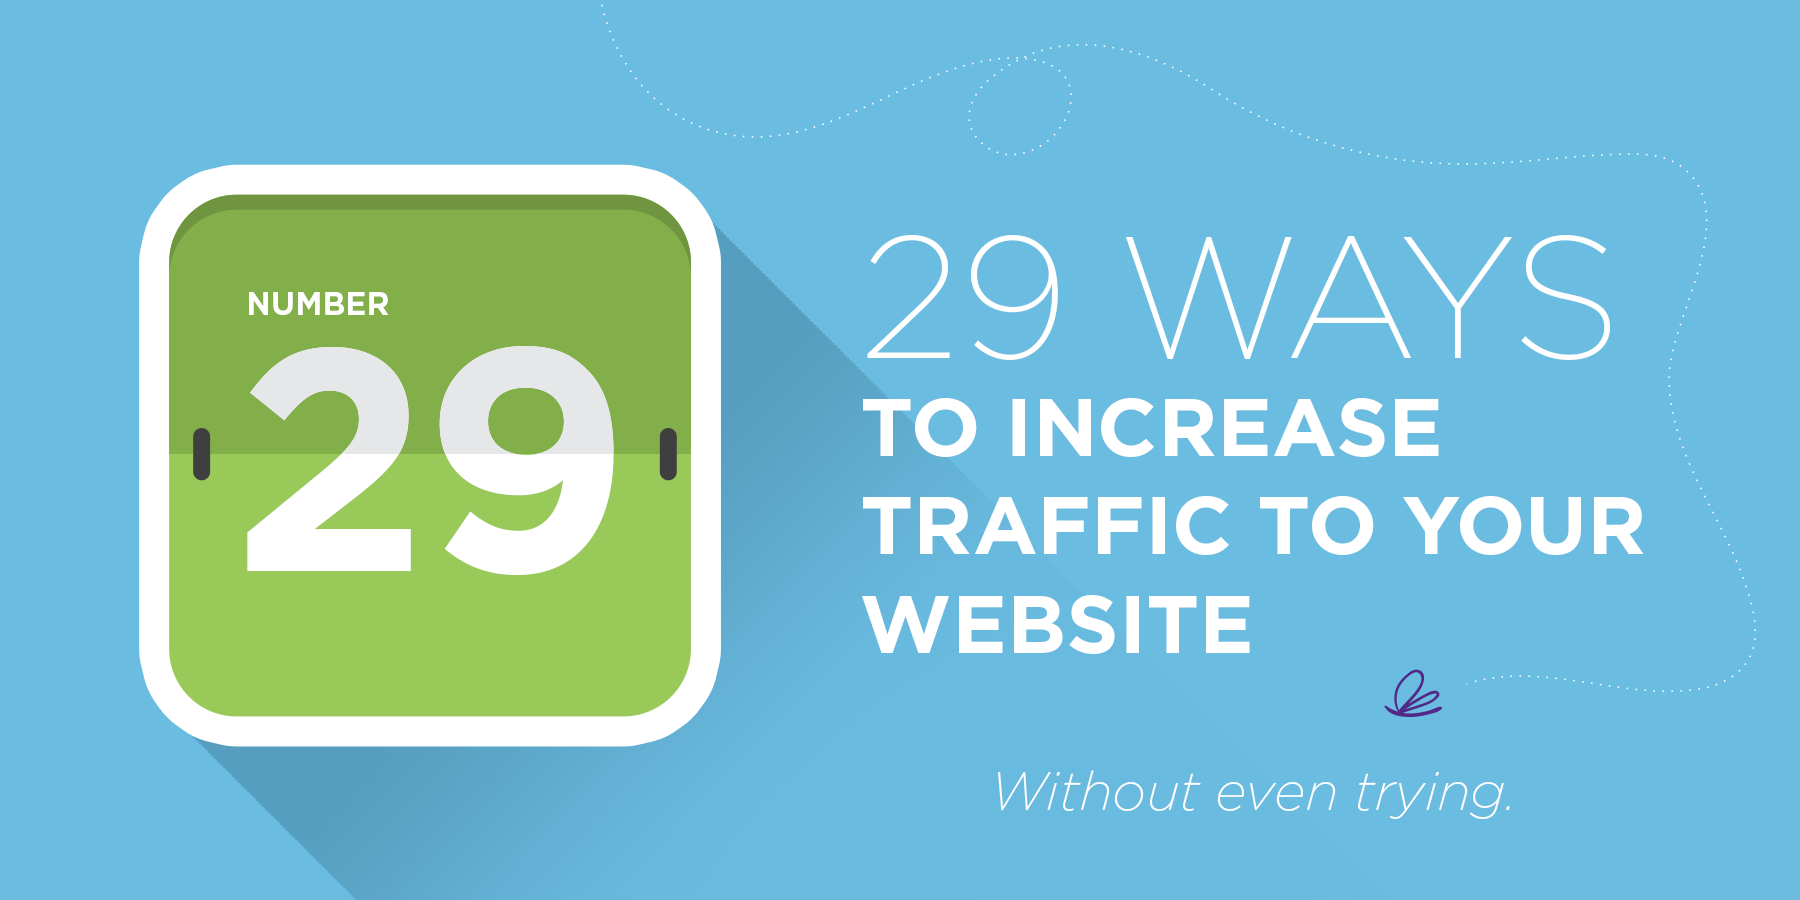 29 Ways to Increase Traffic to Your Site Without Even Trying